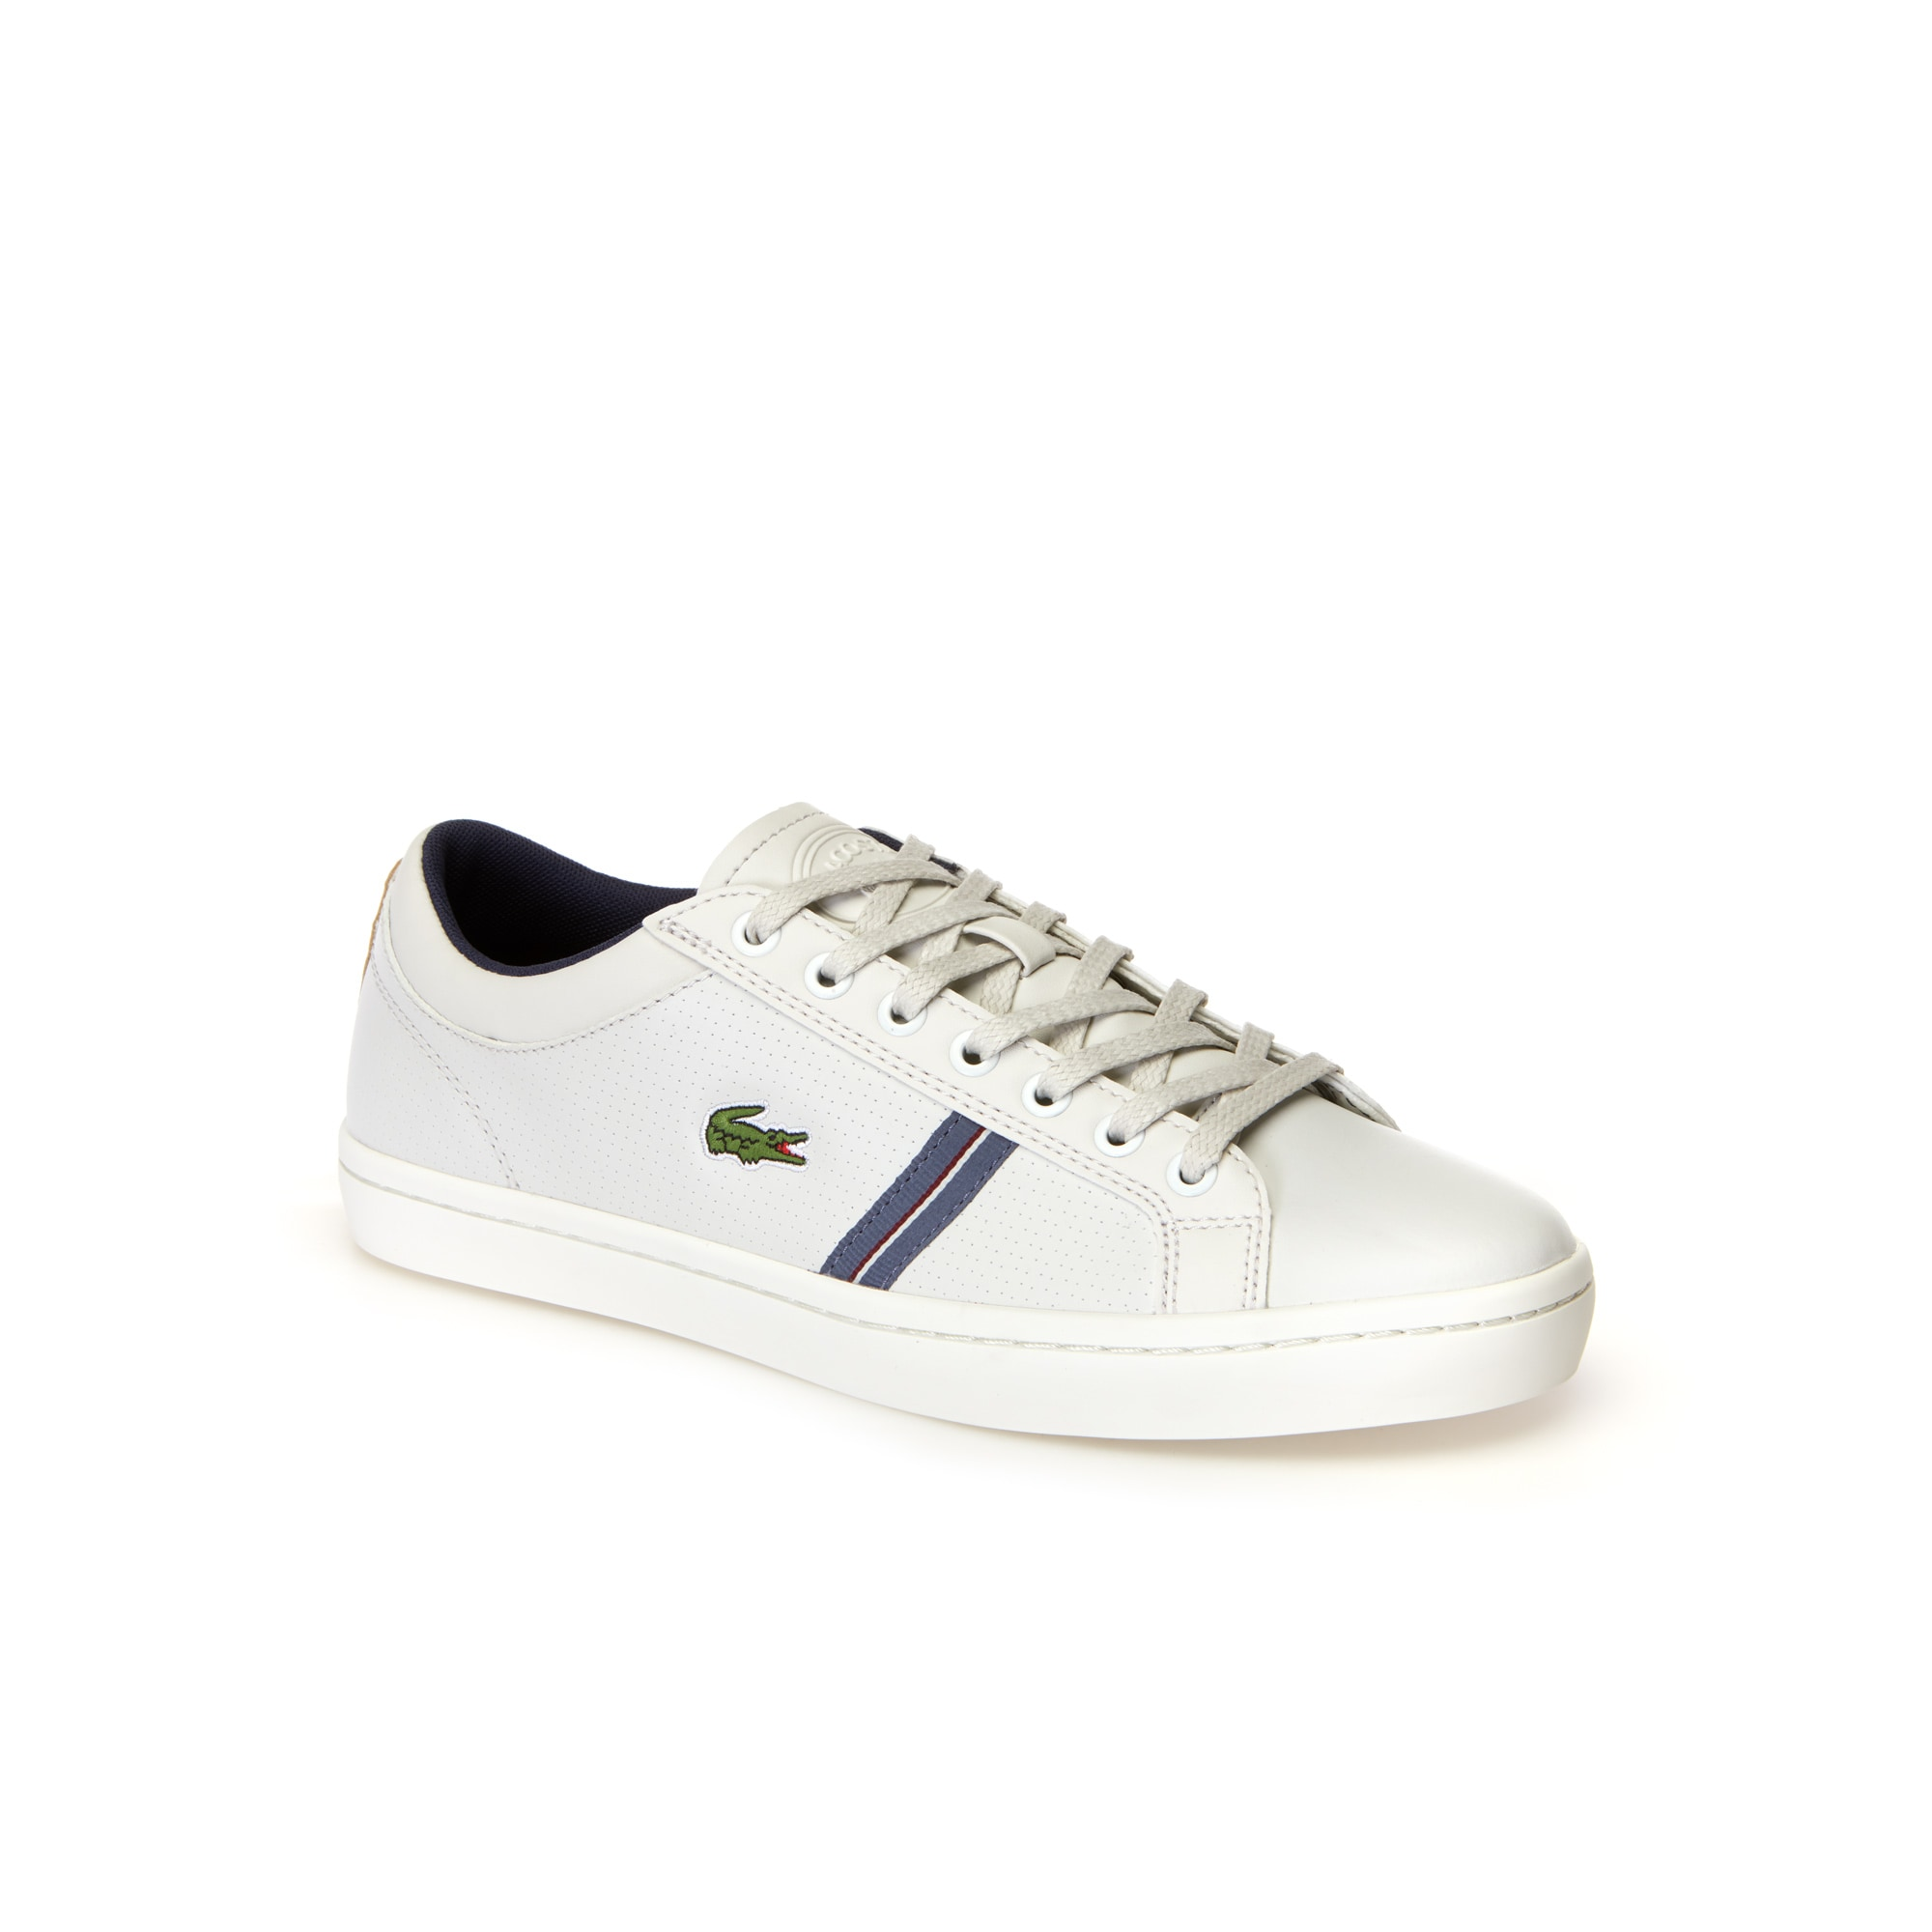 405abc6baede87 + 1 color. 30% off. Men s Straightset Sport Leather Trainers